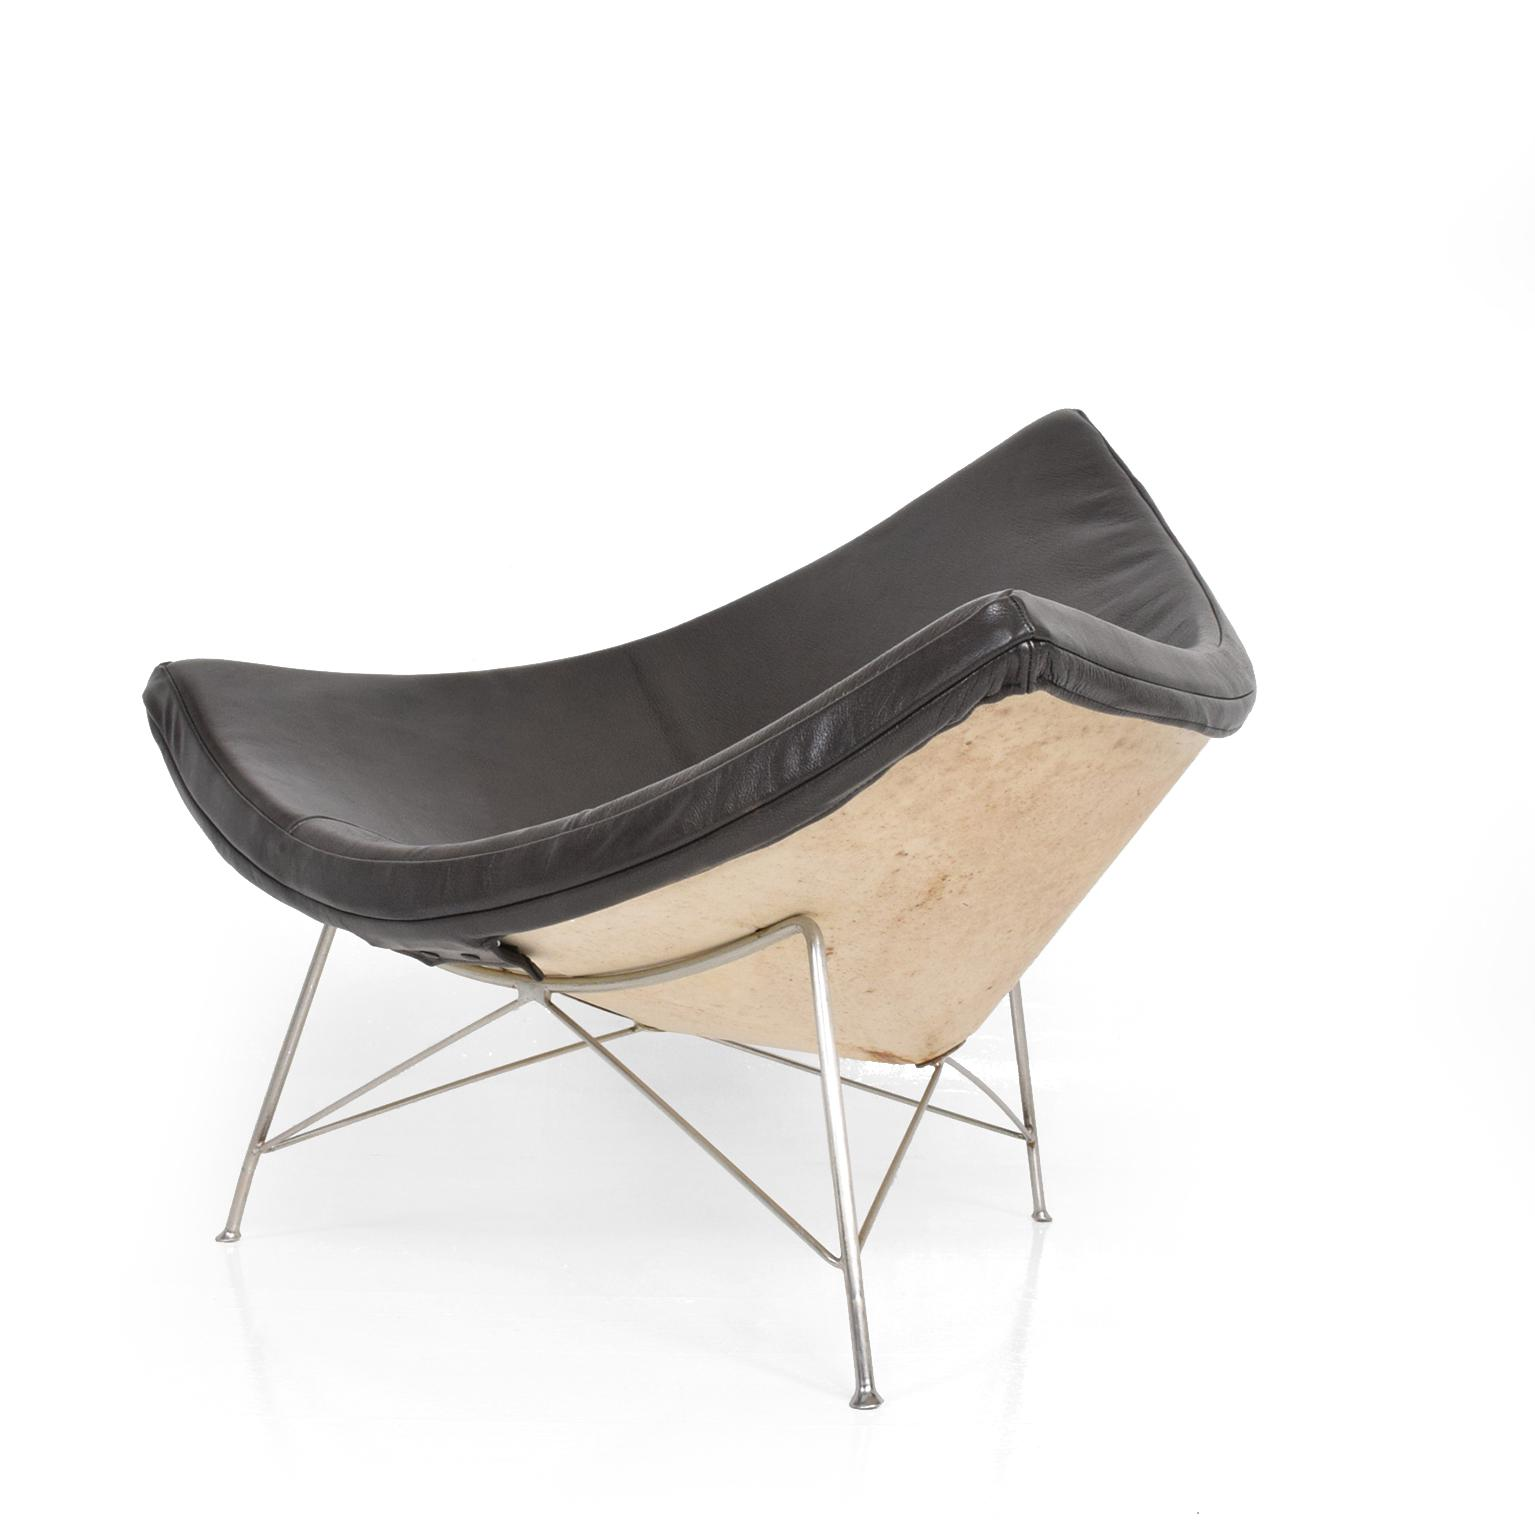 Marvelous Early Coconut Lounge Chairs By George Nelson For Herman Miller   Image 11  Of 11